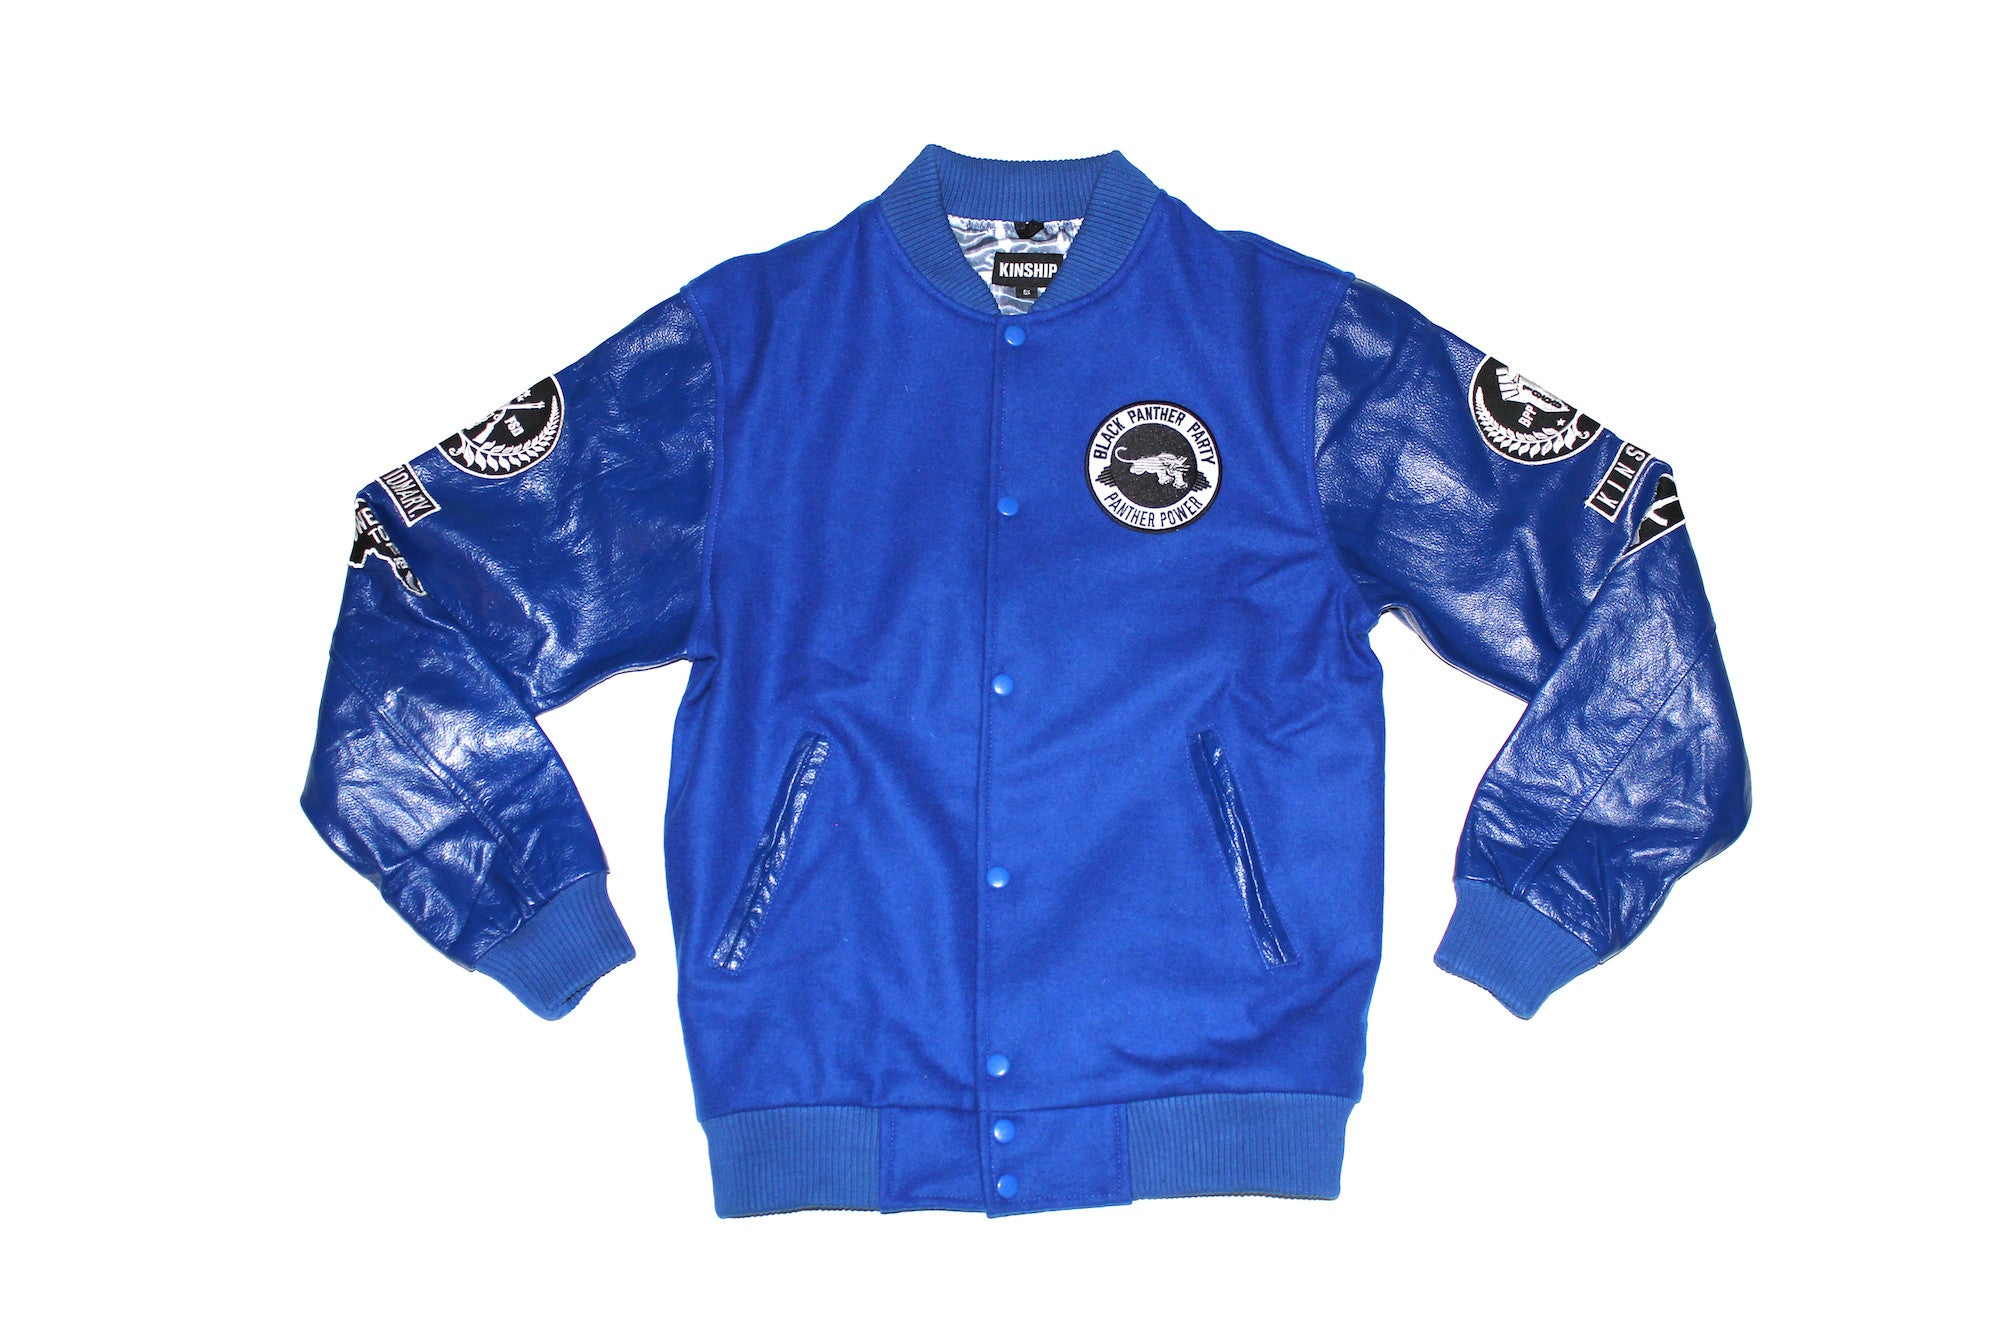 Black Panther Varsity Jacket in Blue Contrast